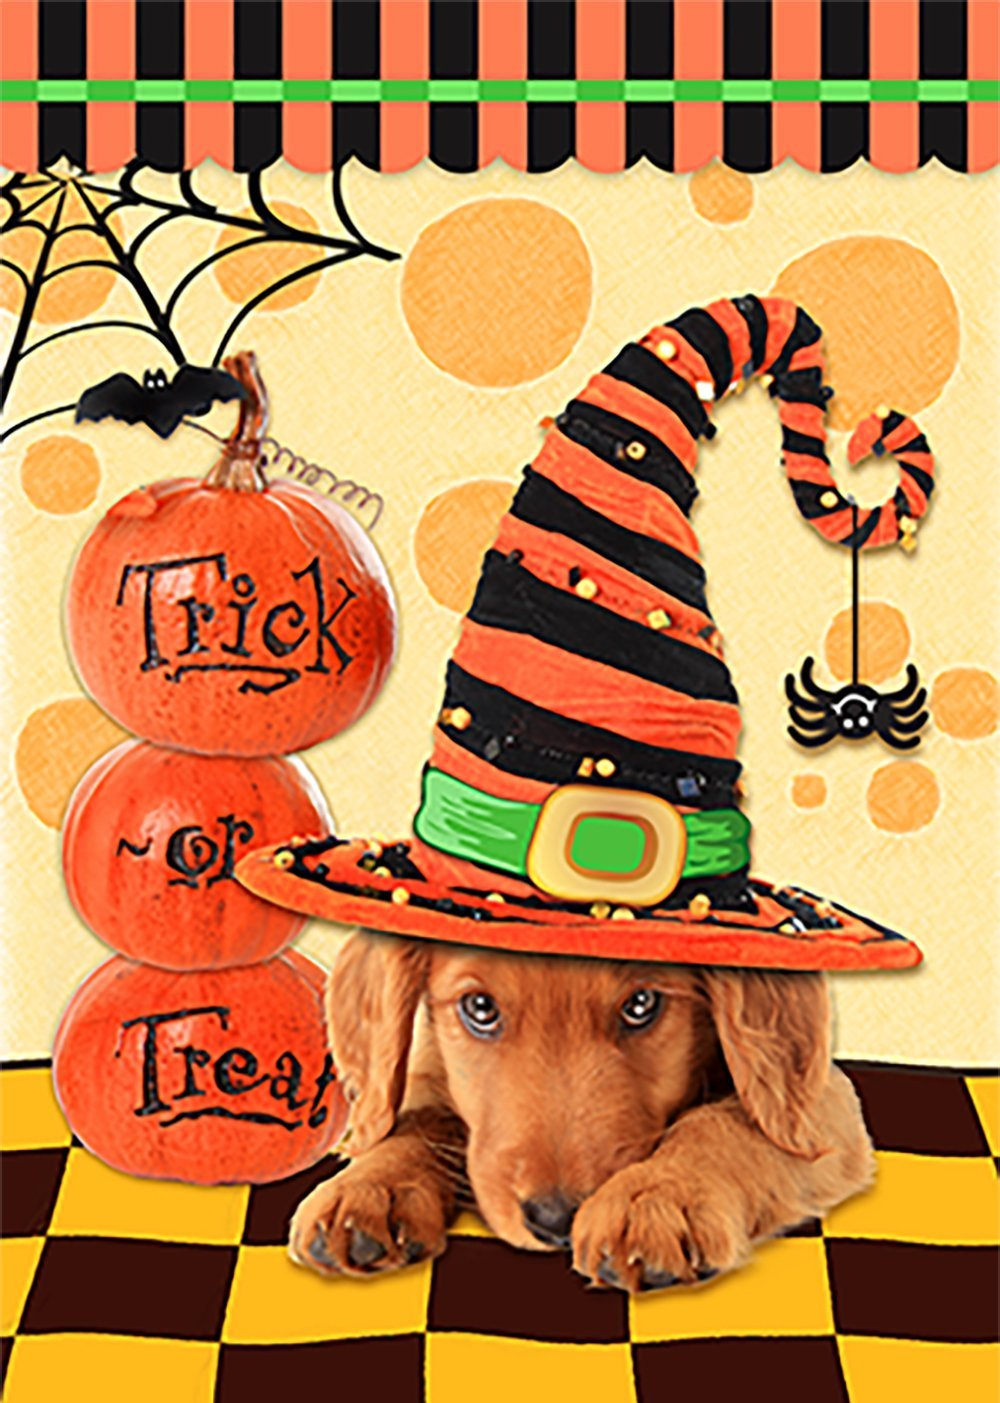 Morigins Happy Halloween Dog with Hat Decorative Trick or Treat Double Sided Pumpkin Outdoor Garden Flag 12.5 x 18 Inch